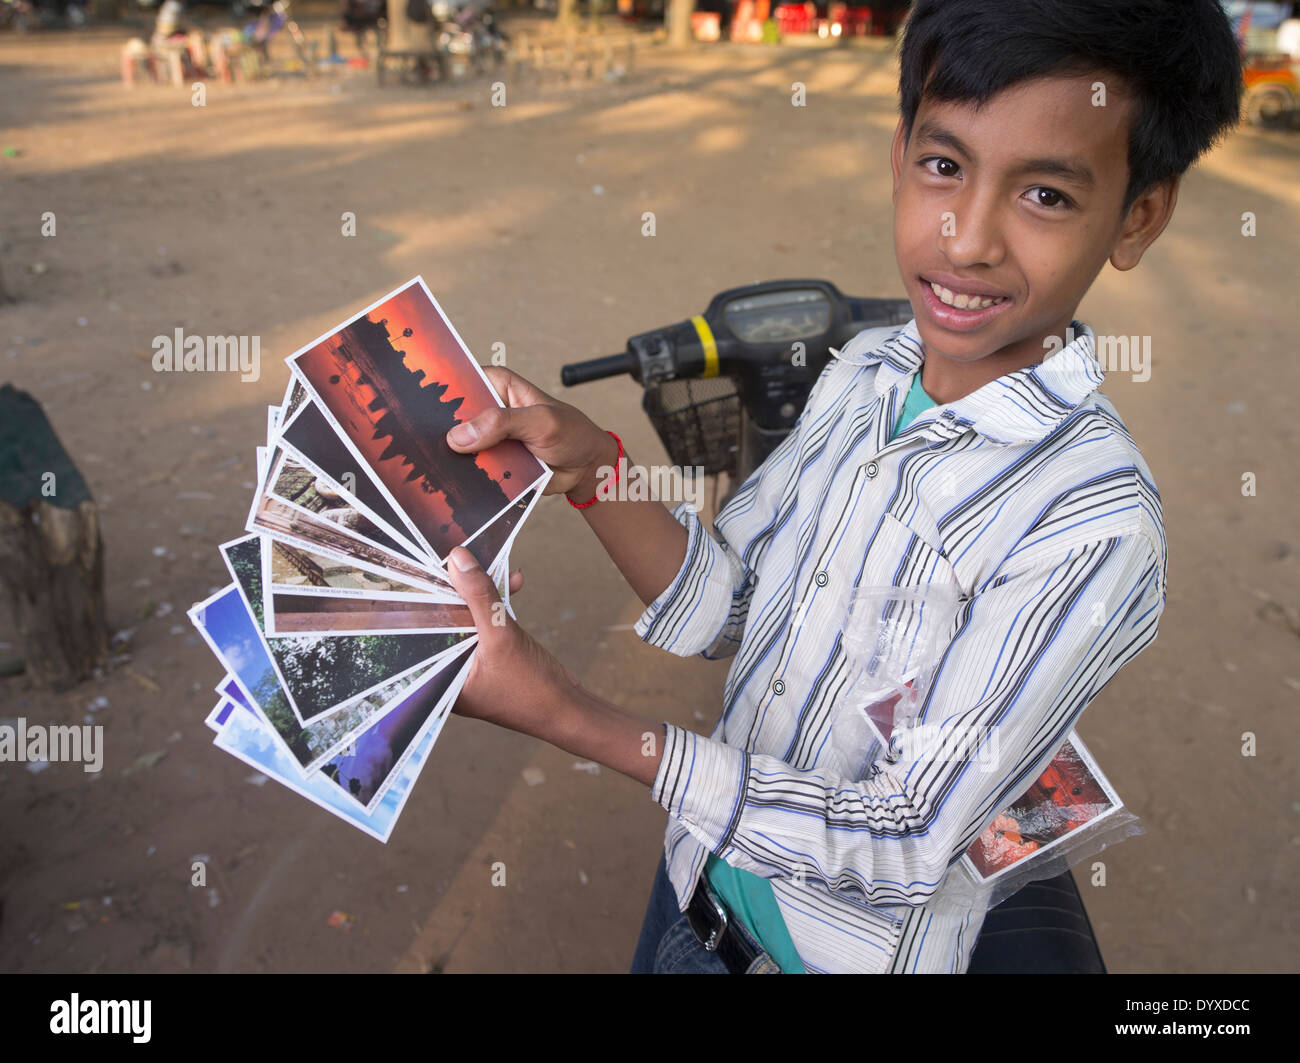 Young Cambodian boy selling postcards at Angkor Wat Temple, Siem Reap, Cambodia - Stock Image